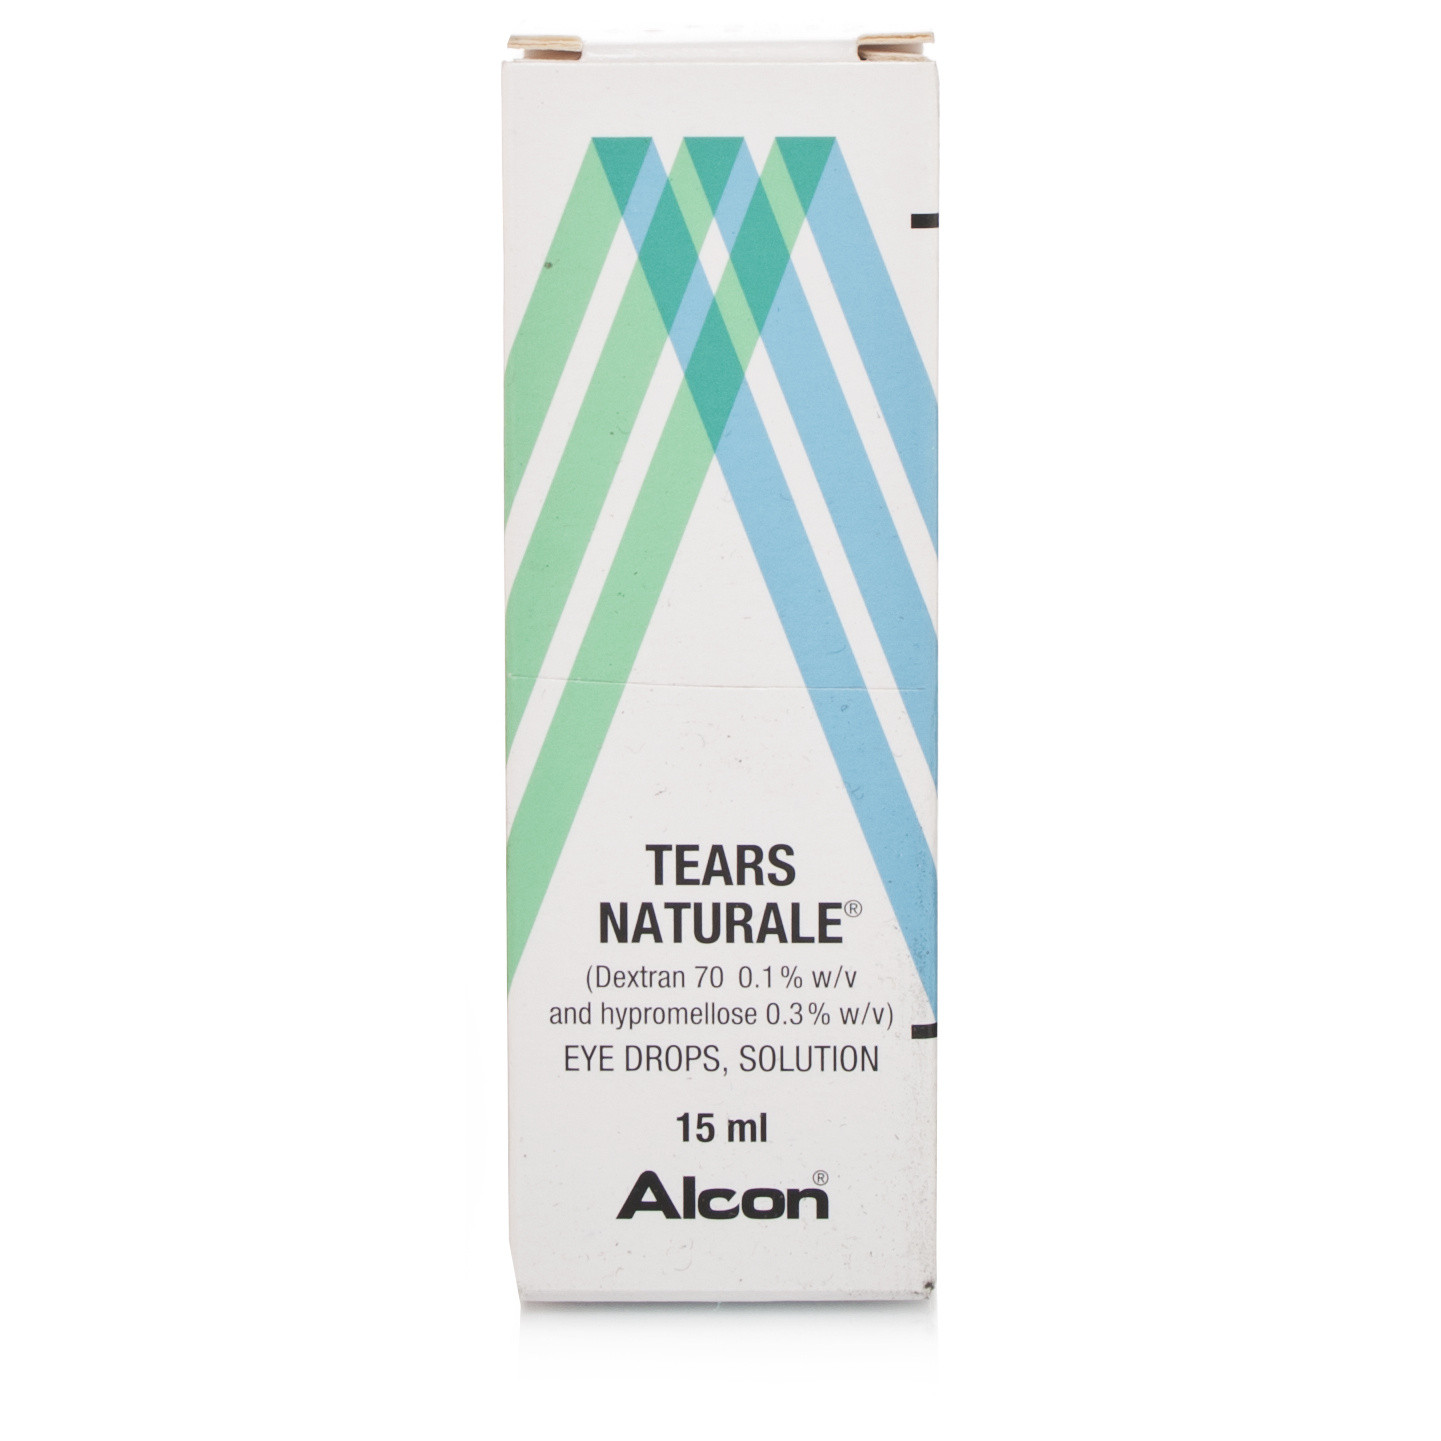 Tears Naturale (Alcon)